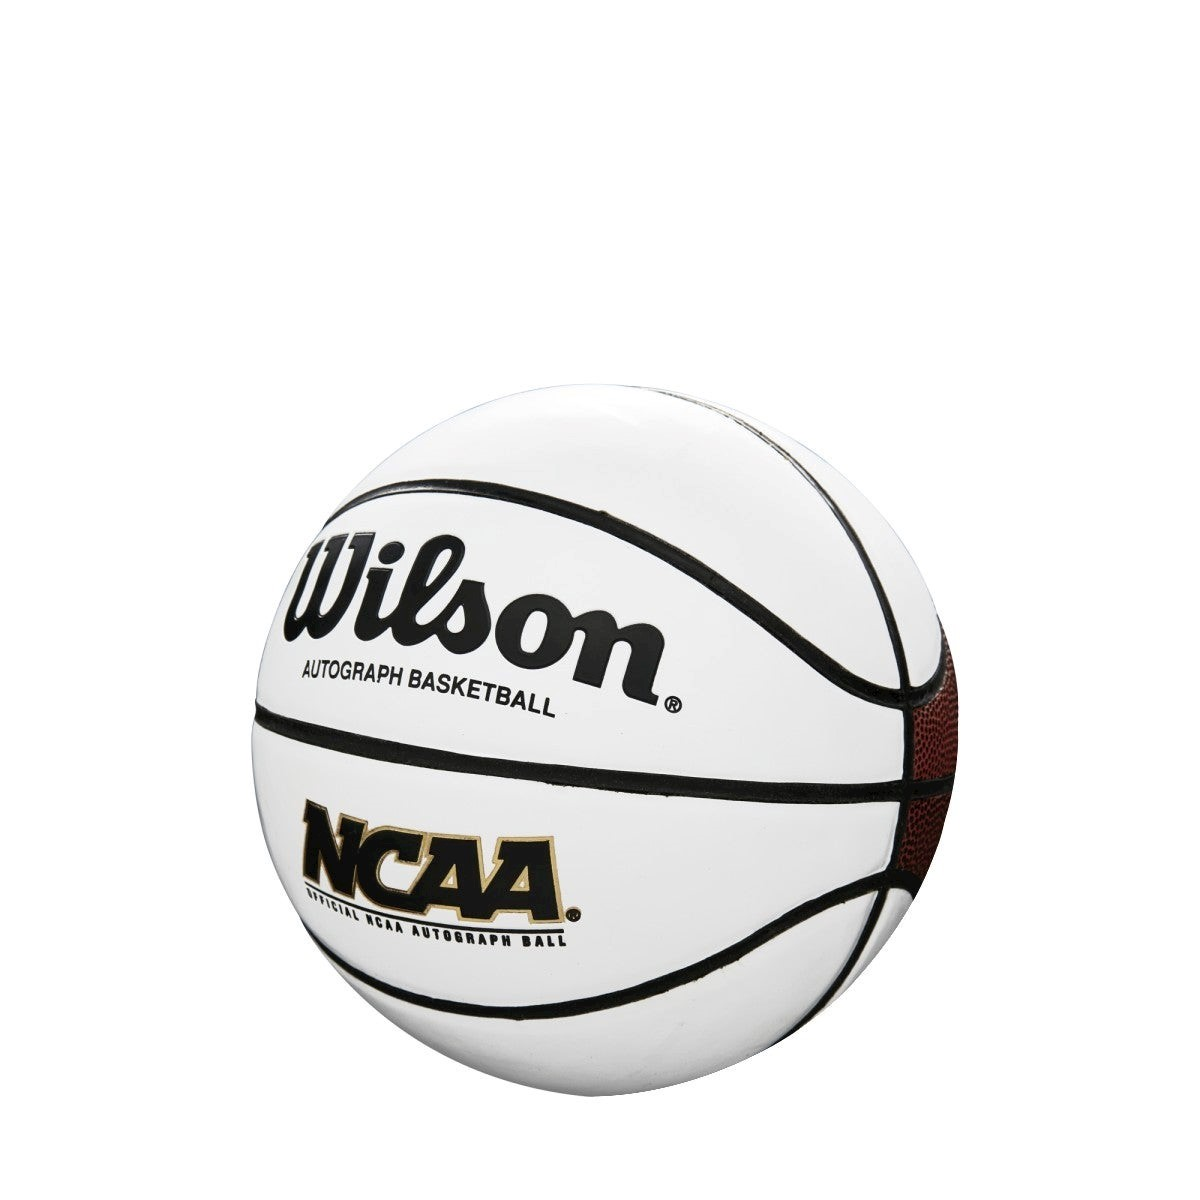 WTB0716 Wilson NCAA Mini Autograph Basketball MAIN